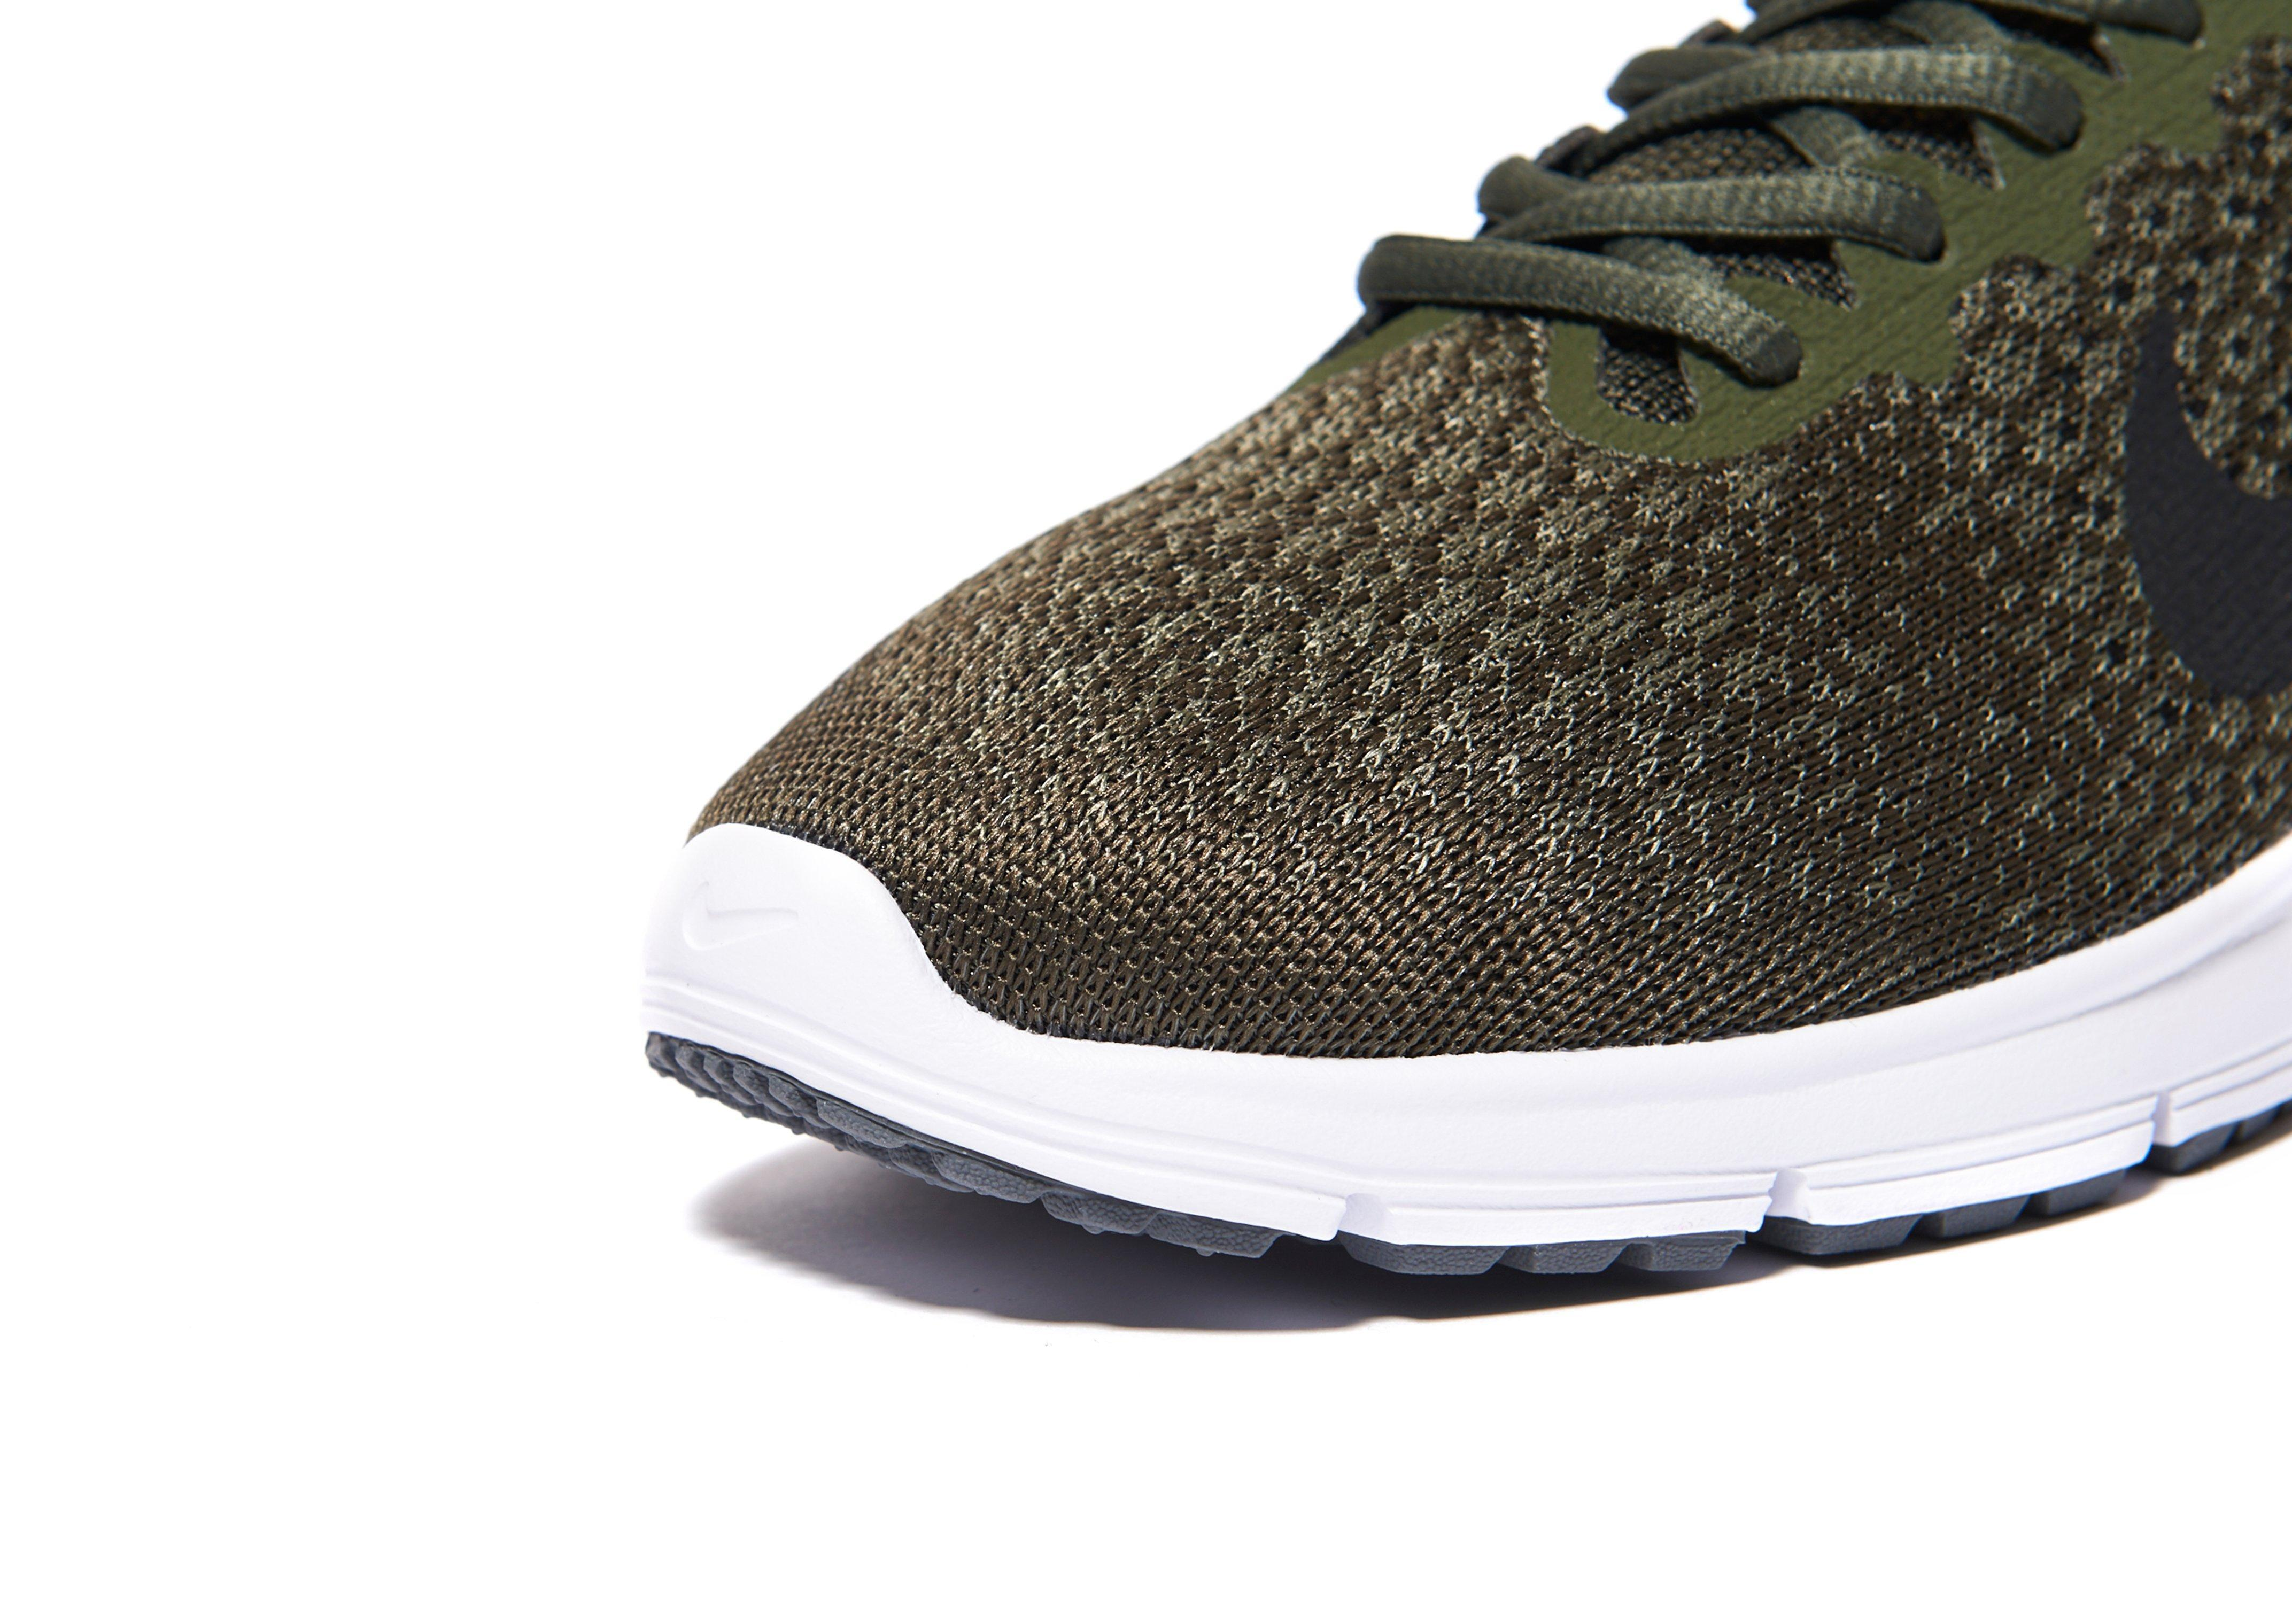 lyst nike air max sequent 2 in green for men. Black Bedroom Furniture Sets. Home Design Ideas